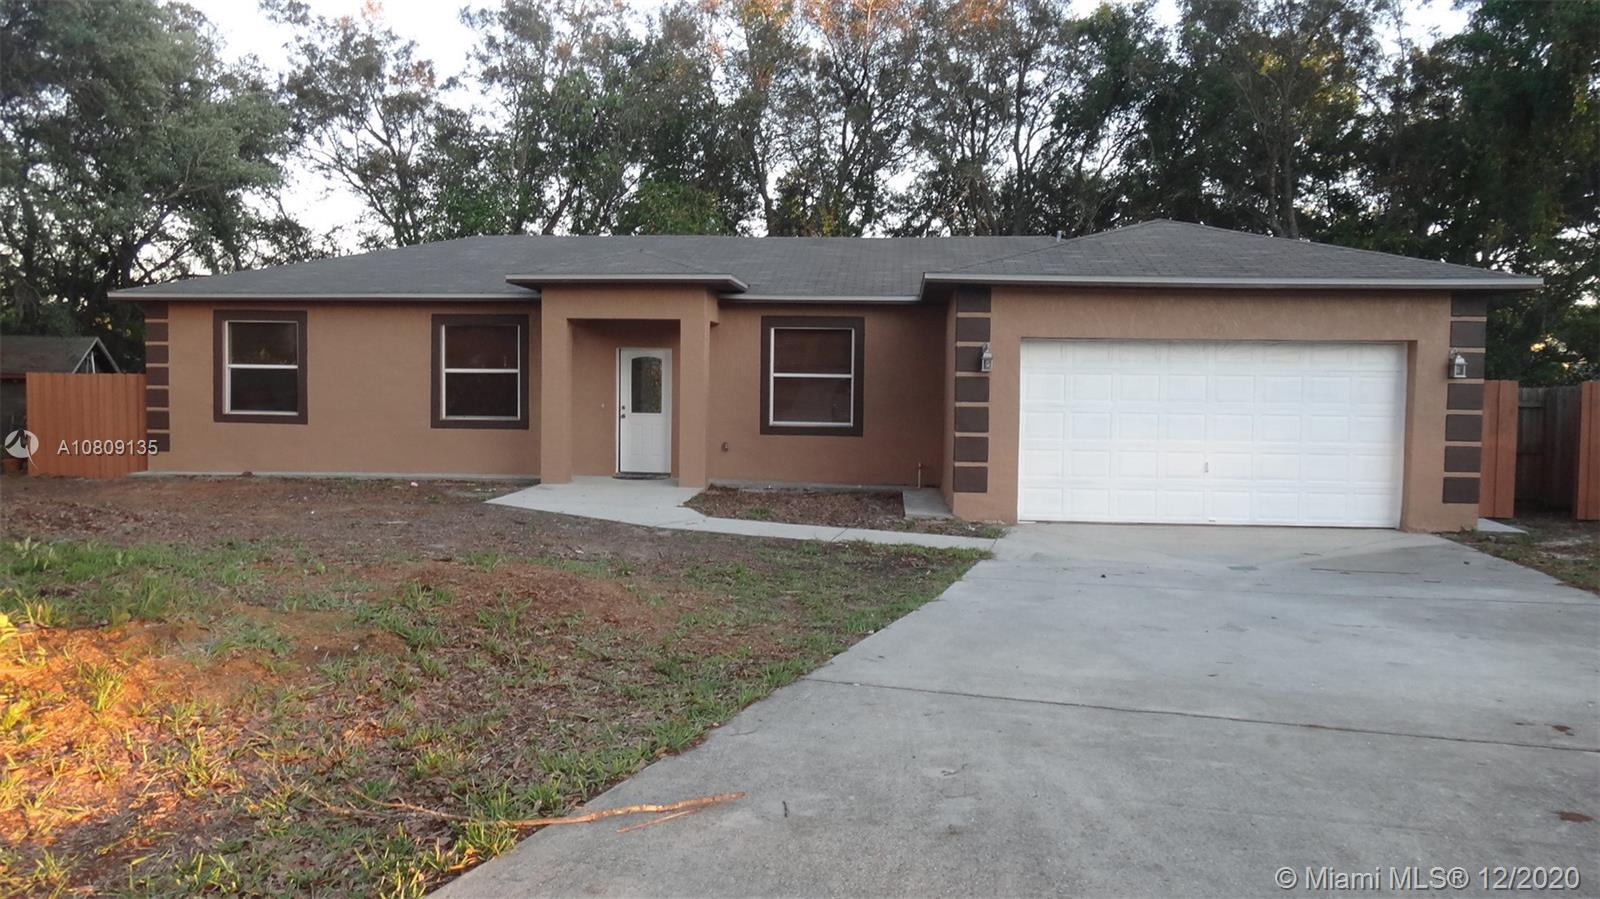 6408 Sleepy Hollow, Orlando, FL 32810